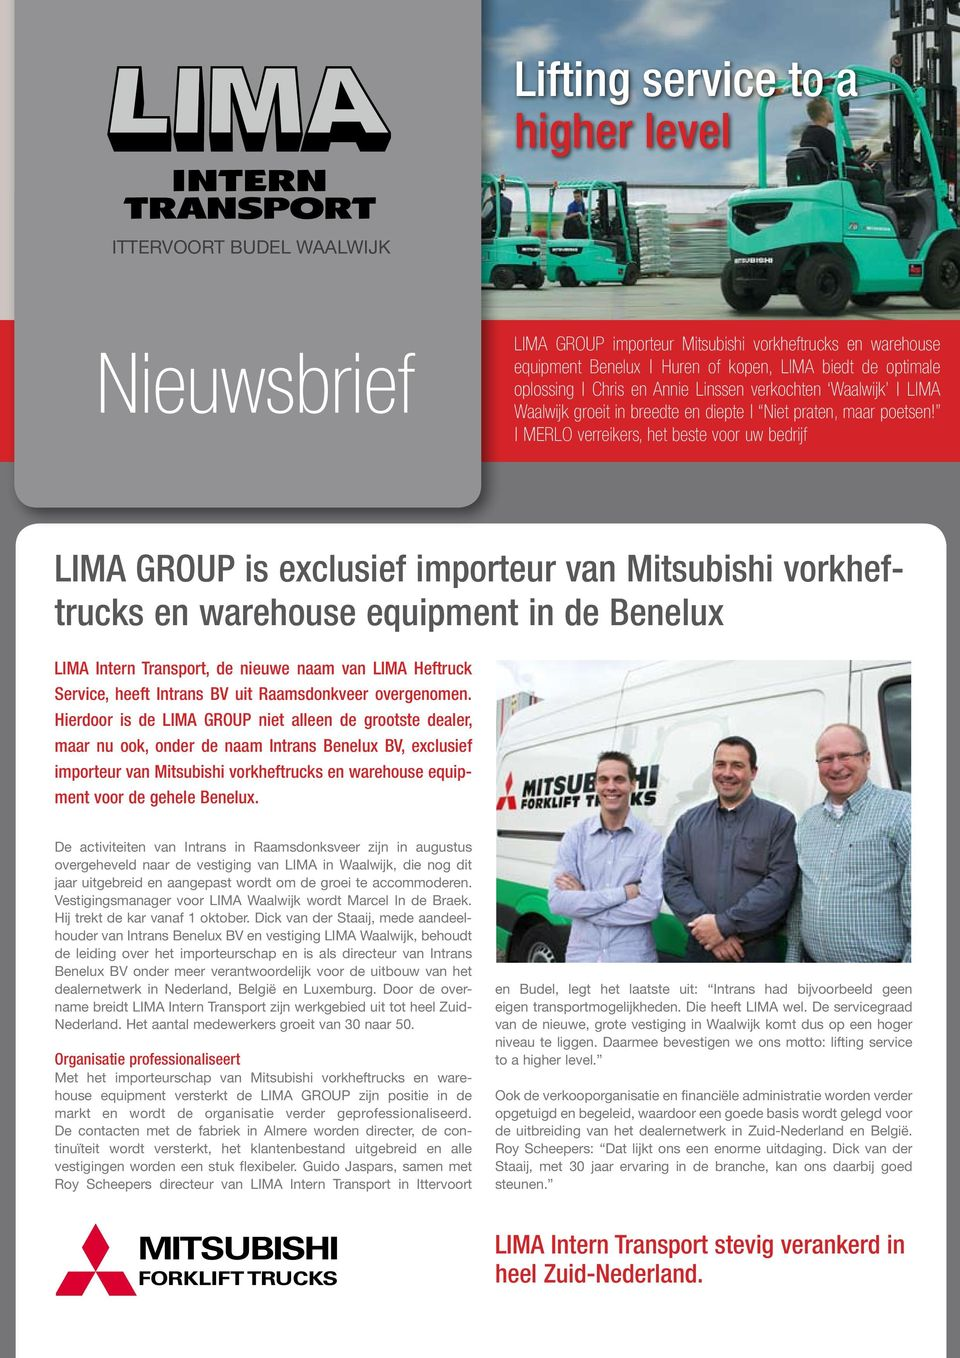 MERLO verreikers, het beste voor uw bedrijf LIMA GROUP is exclusief importeur van Mitsubishi vorkheftrucks en warehouse equipment in de Benelux LIMA Intern Transport, de nieuwe naam van LIMA Heftruck